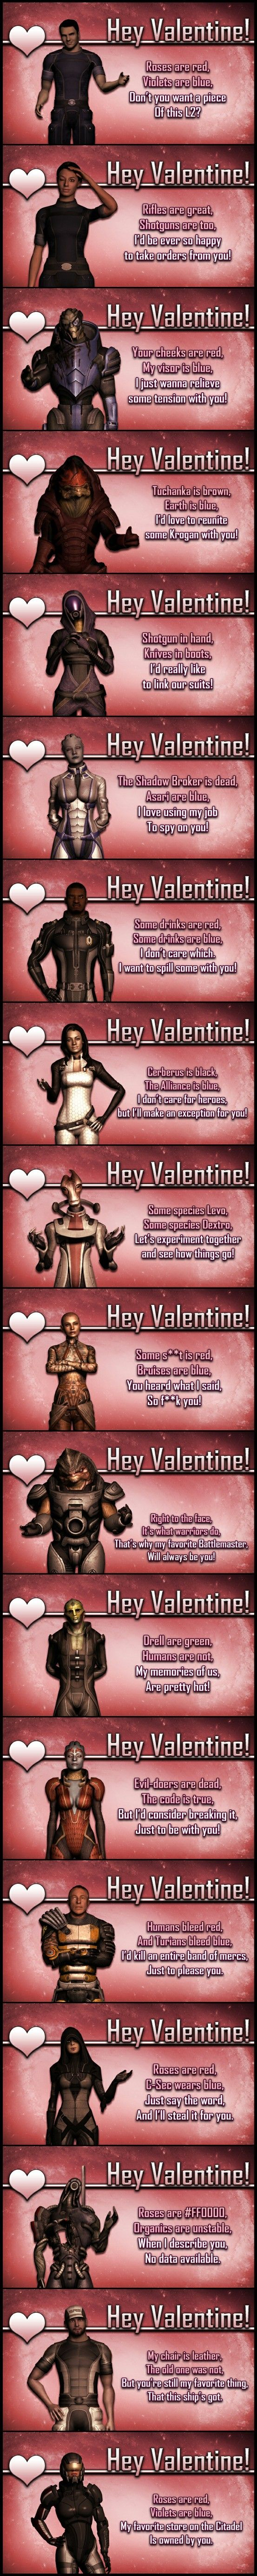 Mass Effect Valentines - Roses are red, Violets are blue. My favorite store on the Citadel is owned by you.